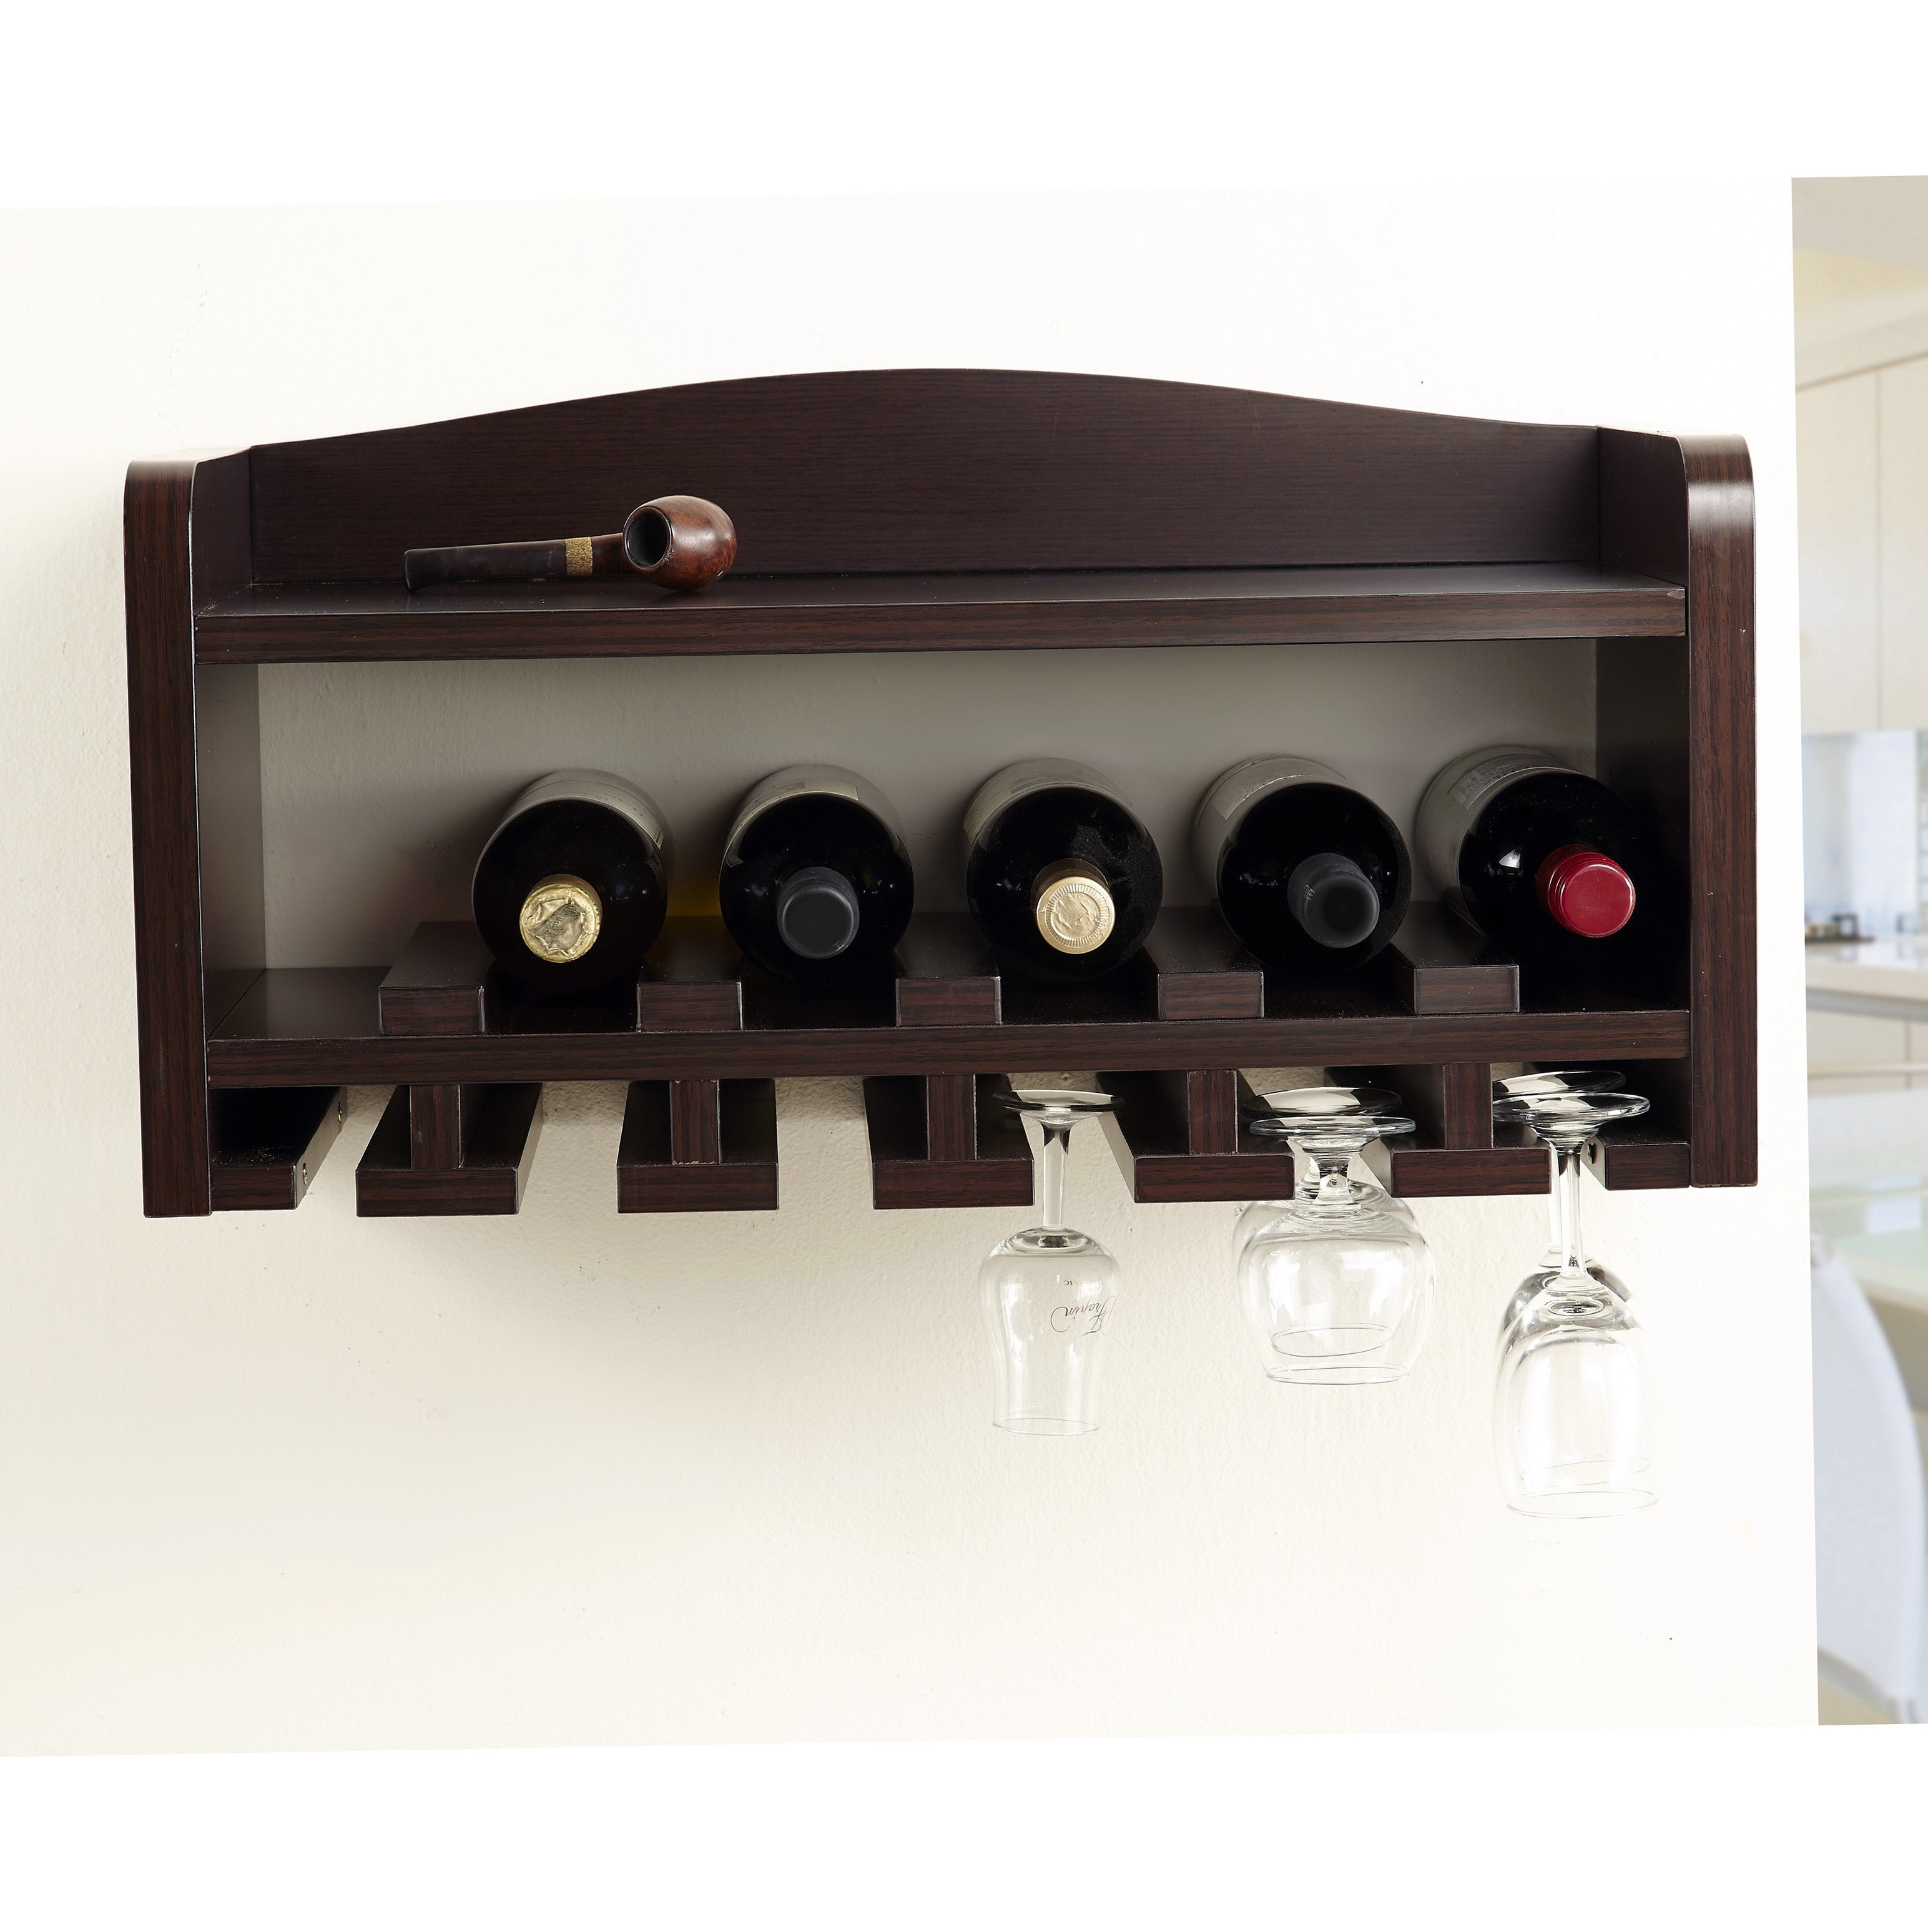 Hanging wine rack with glass holder - Dark Brown Wooden Wine Racks And Glass Holder